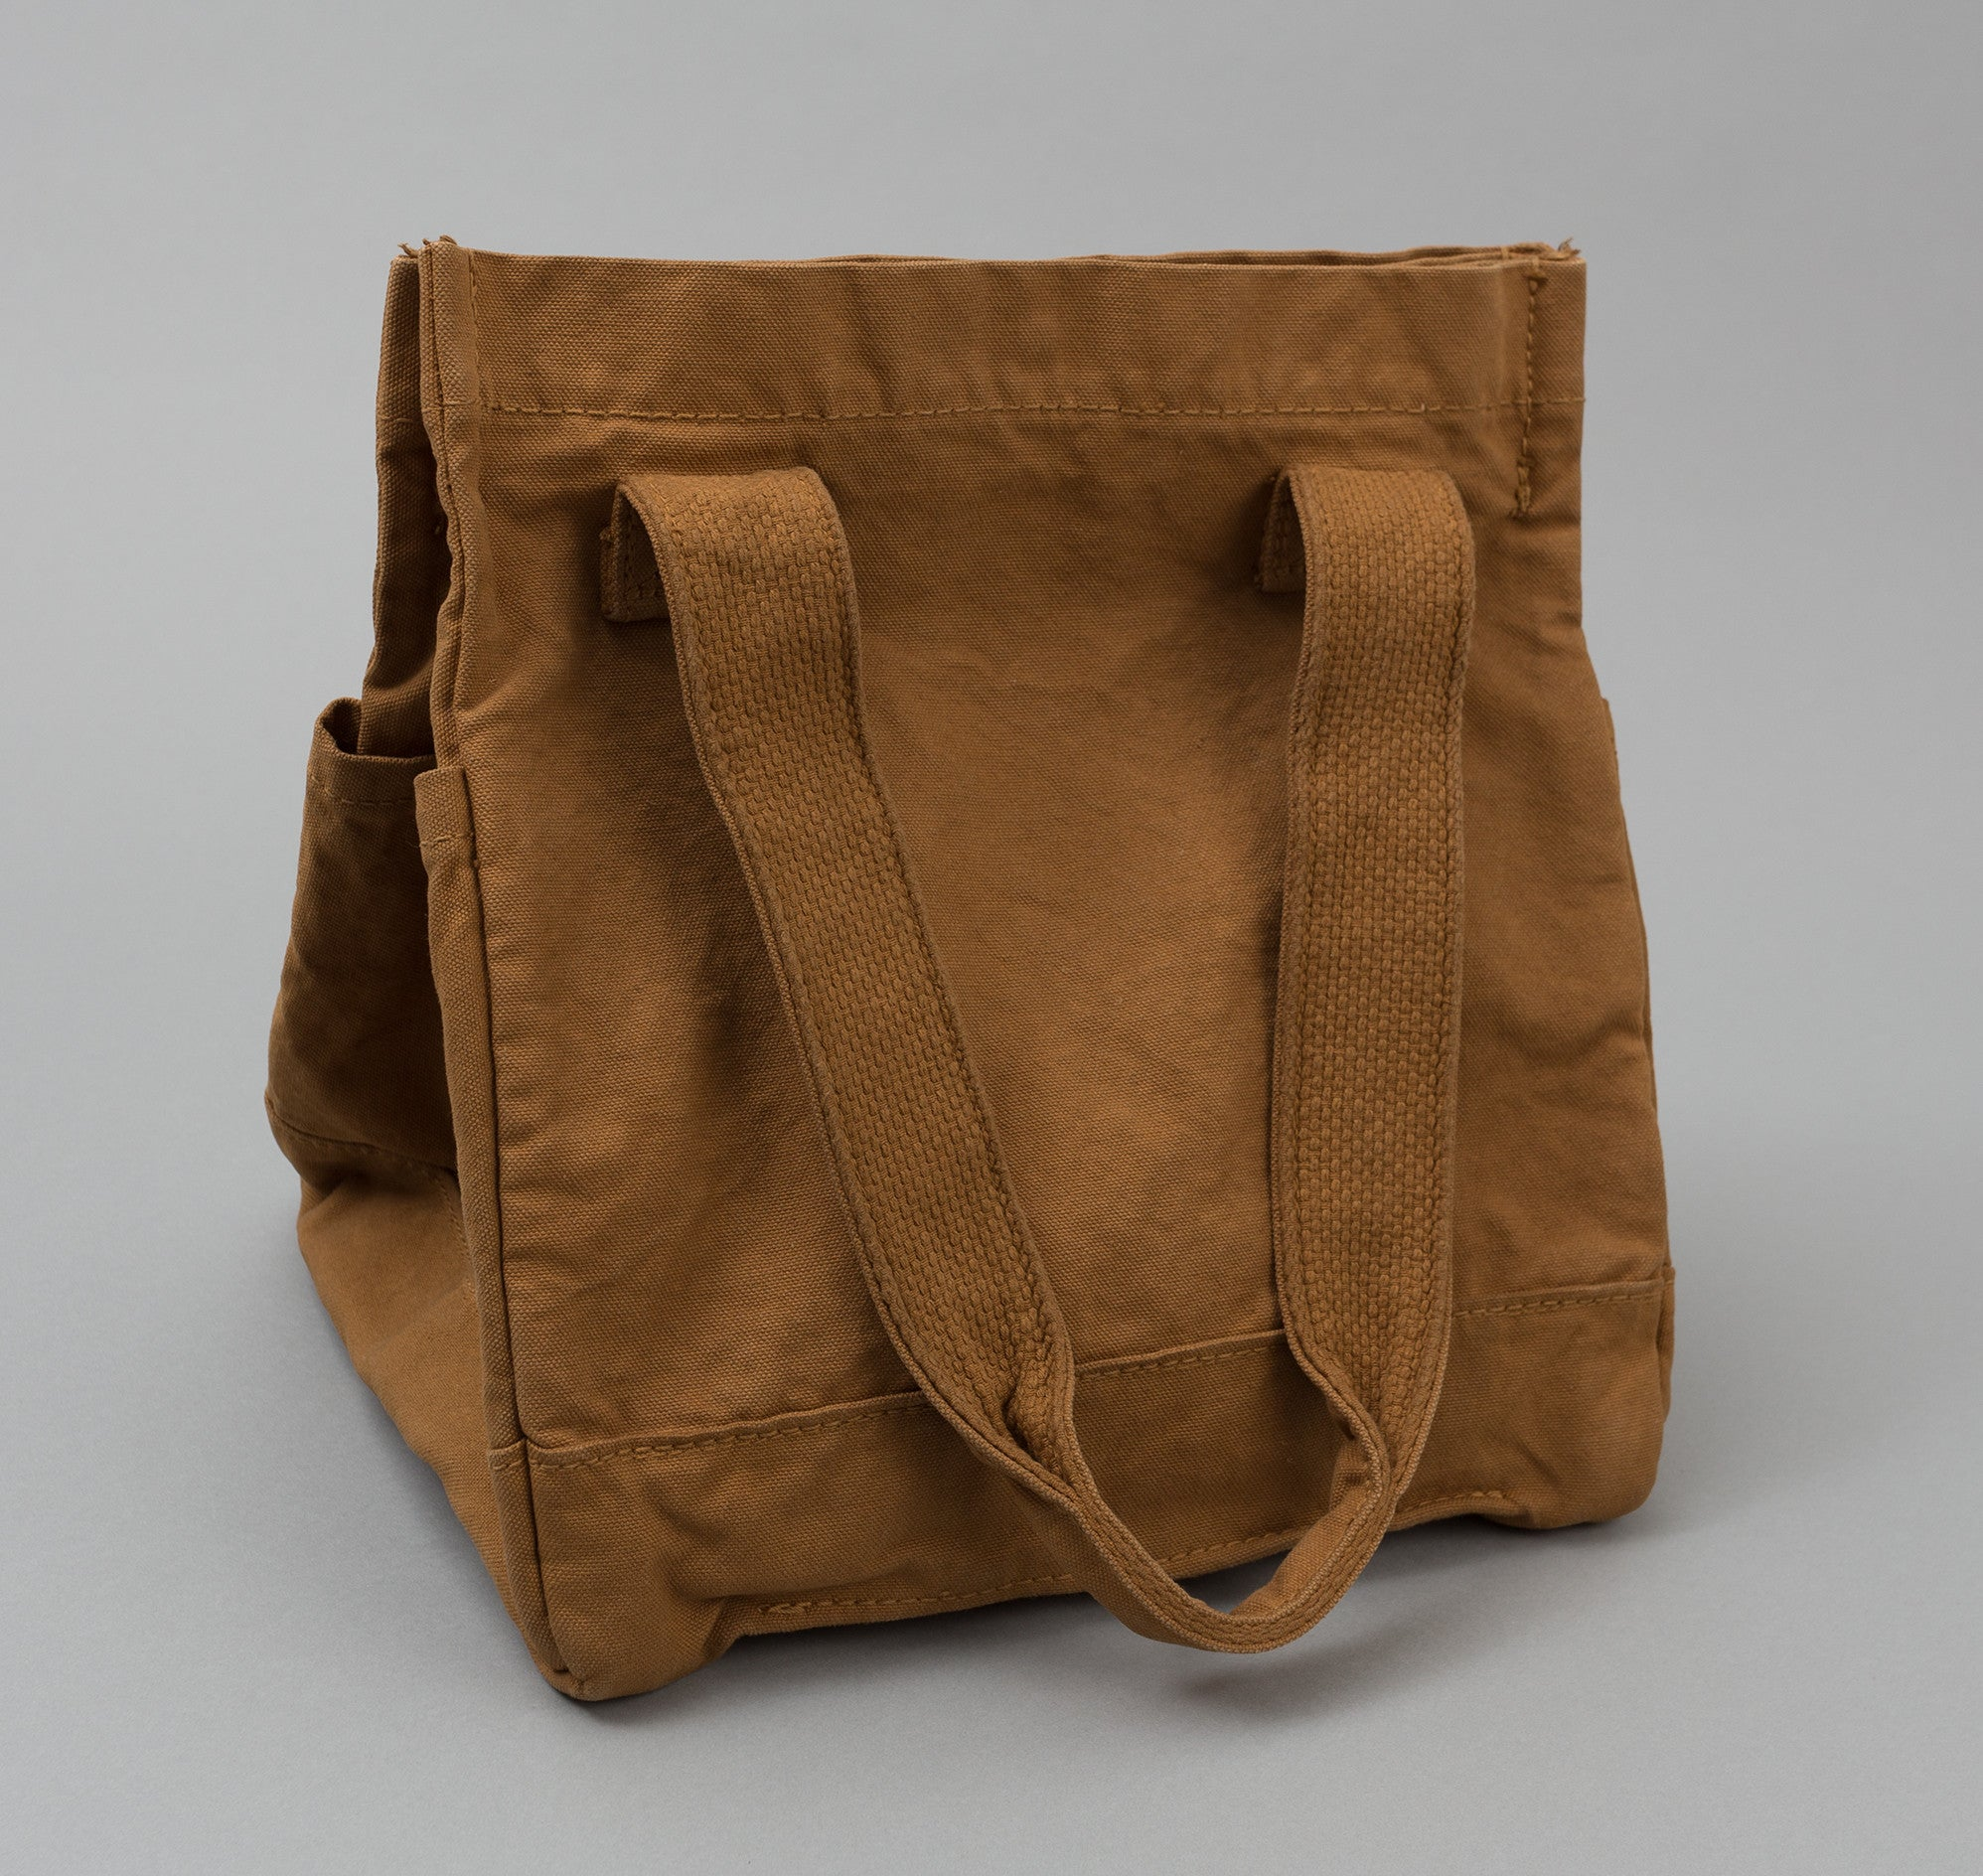 Kapital Canvas Tote Bag, Camel